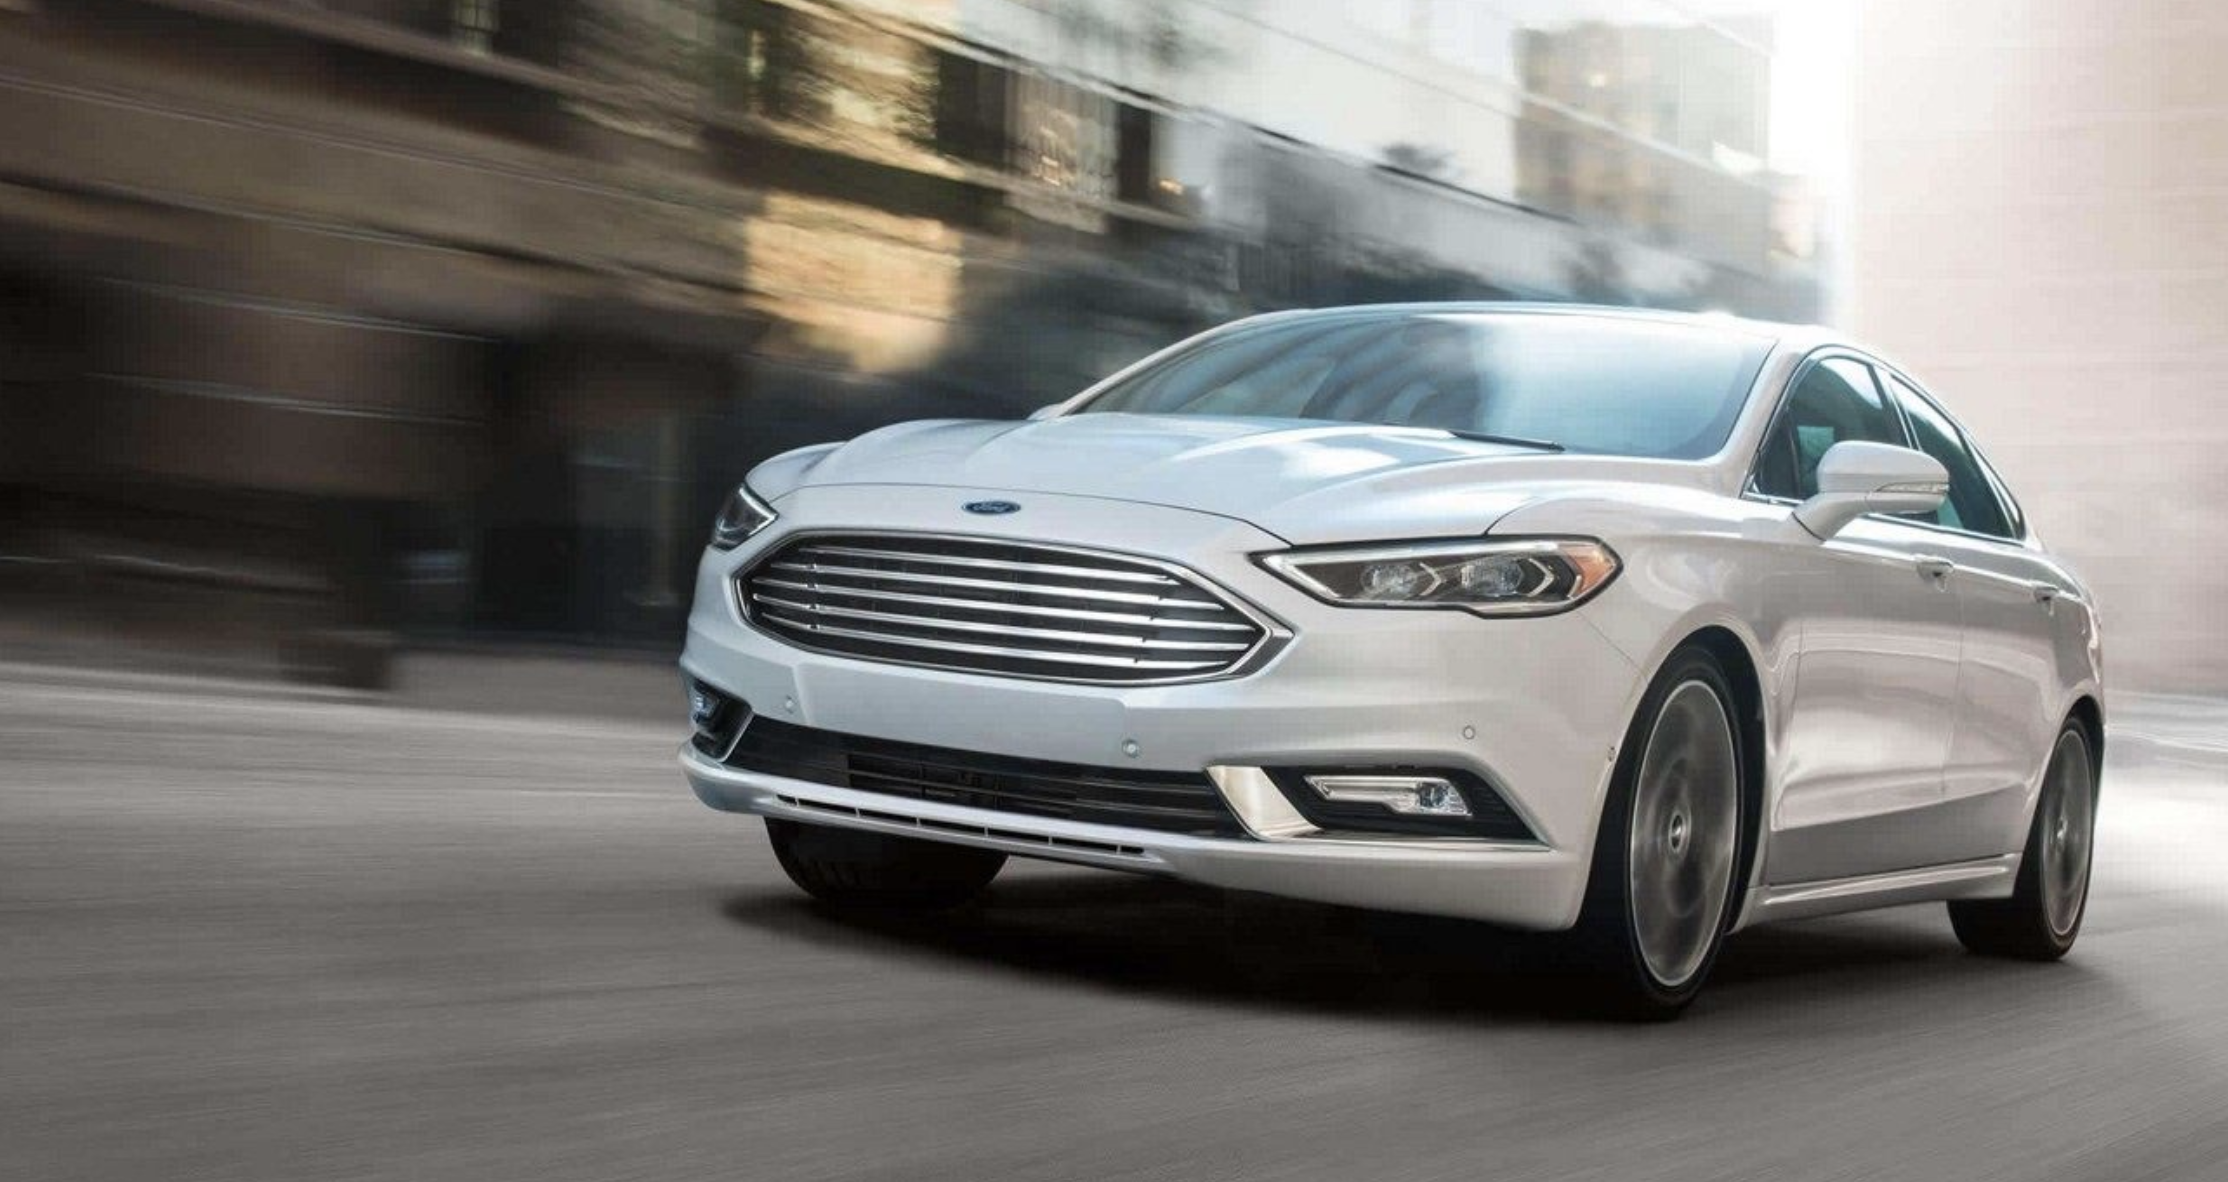 Ford Fusion Hybrid For Sale >> Ford Fusion Hybrid Lease Deals Finance Offers Melbourne Fl